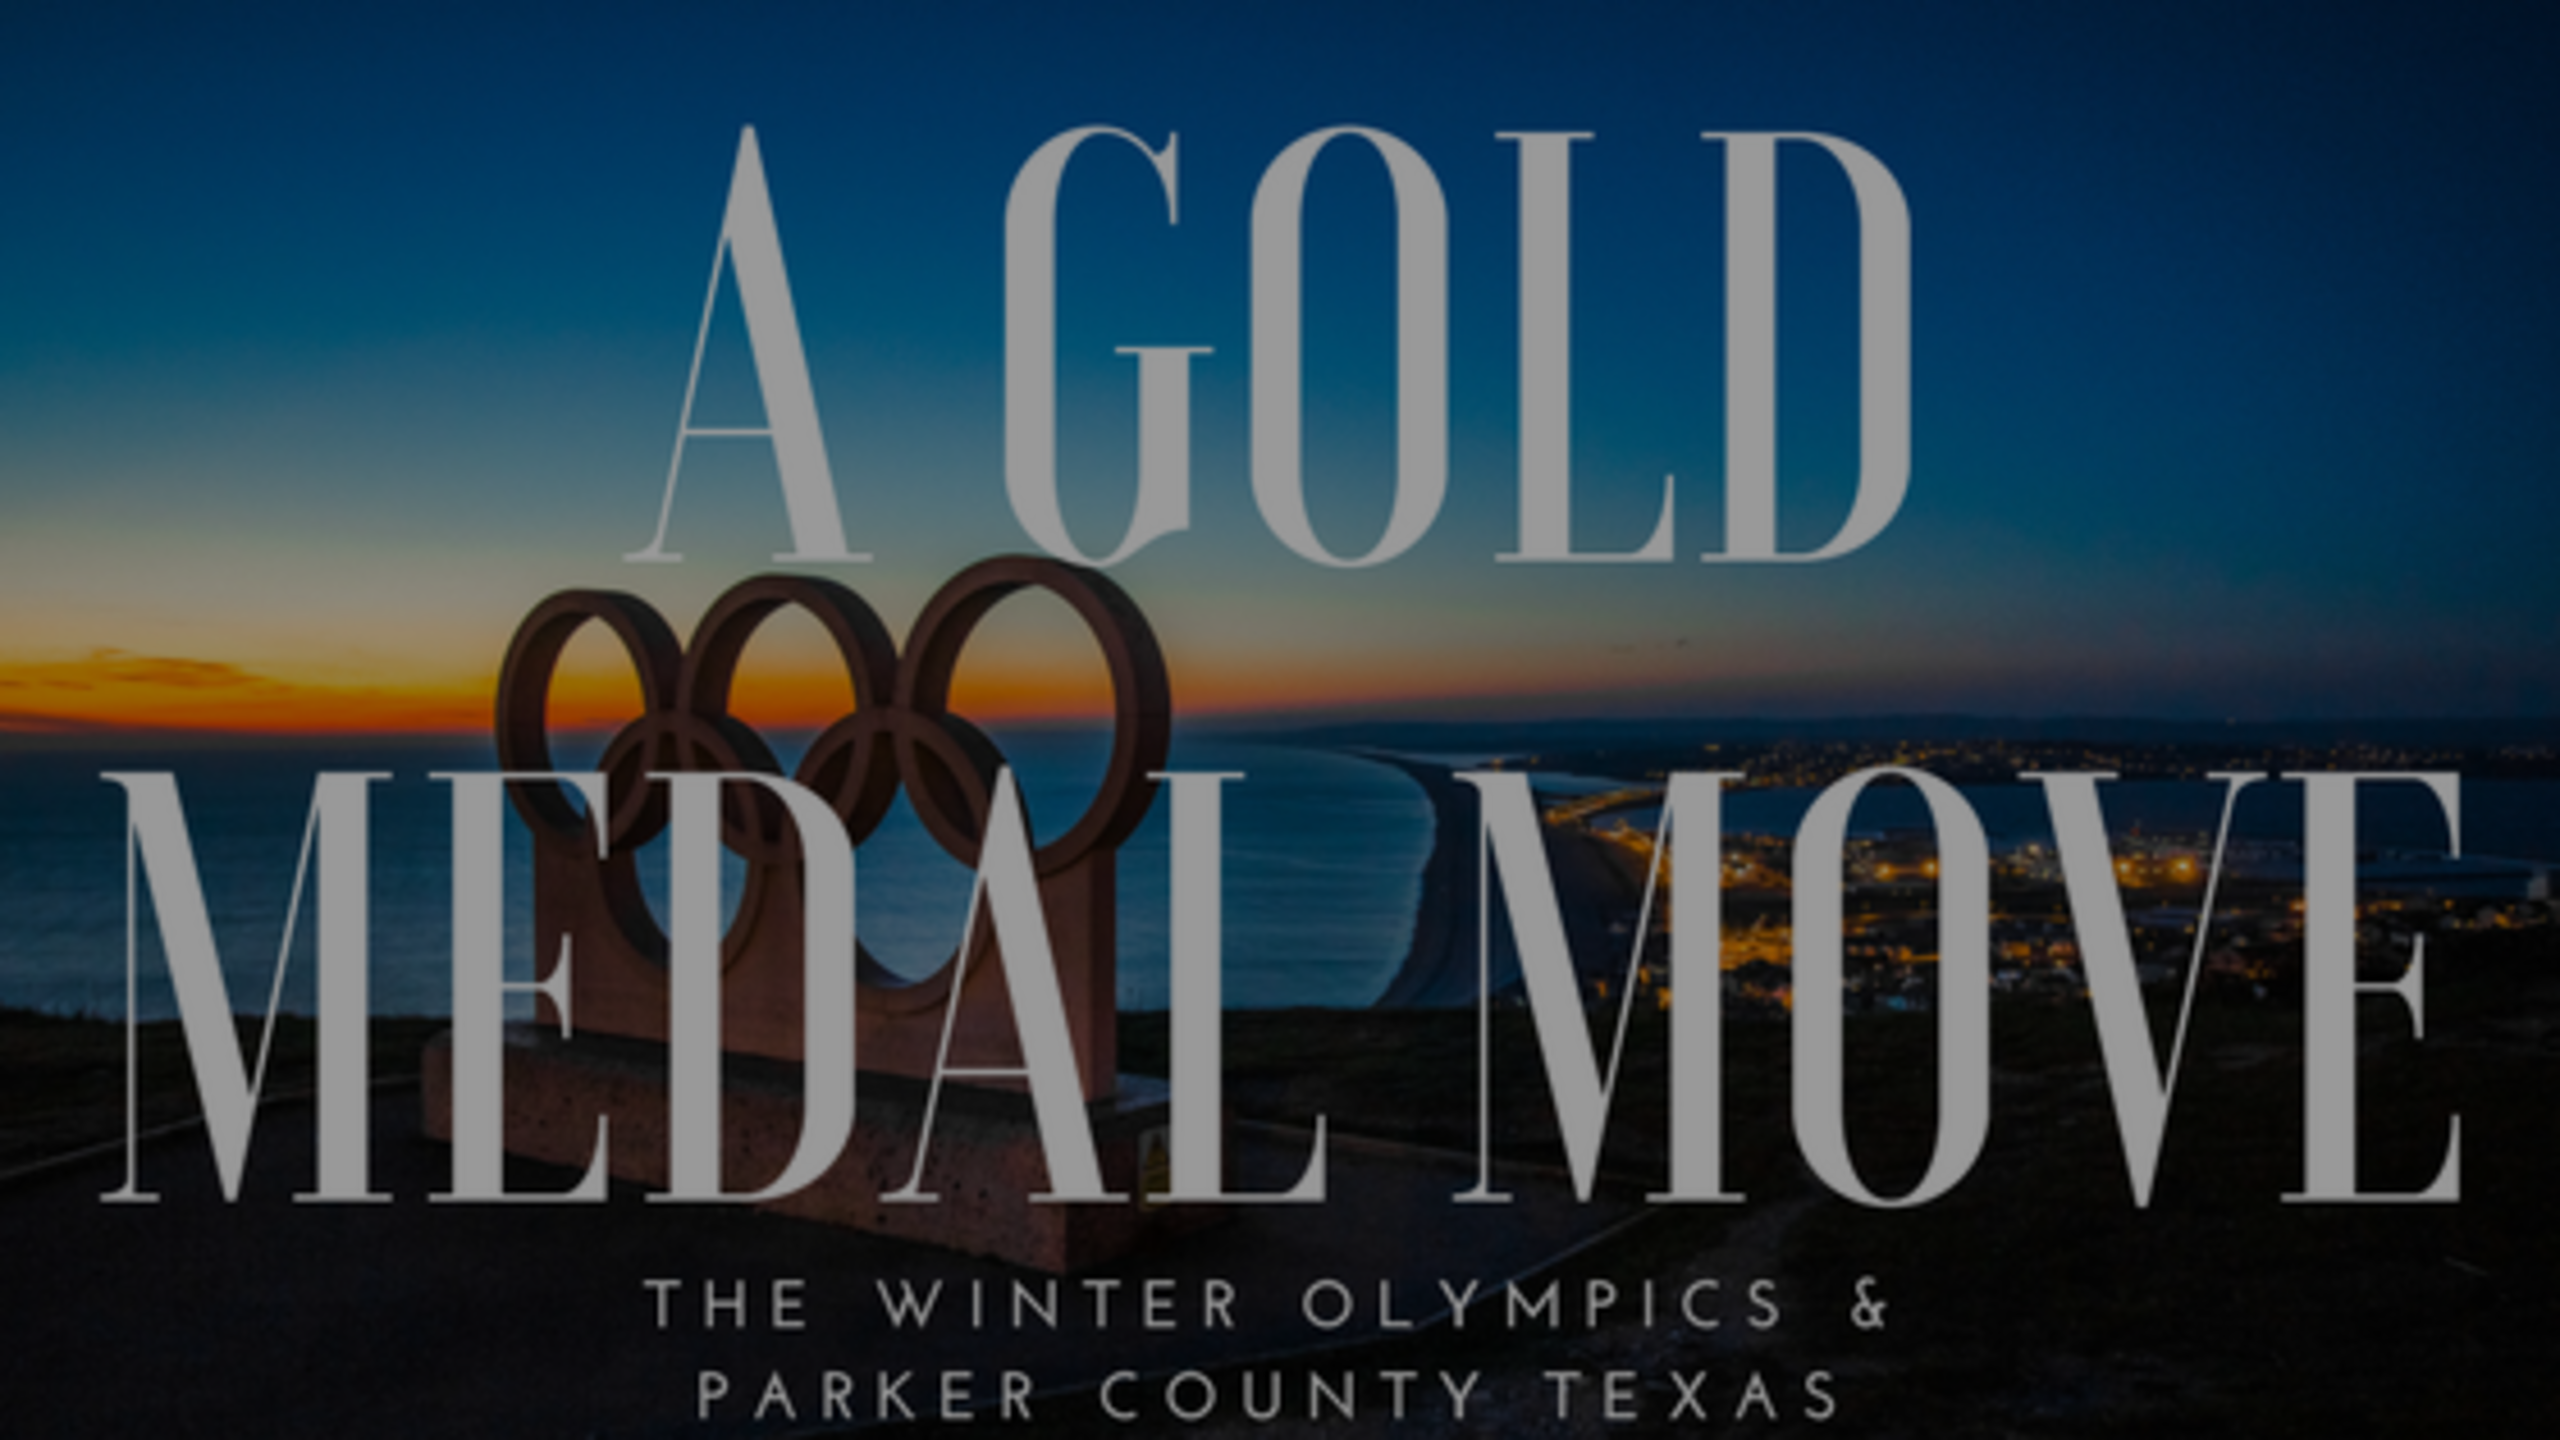 A Gold Medal Move – The Winter Olympics & Parker County Texas